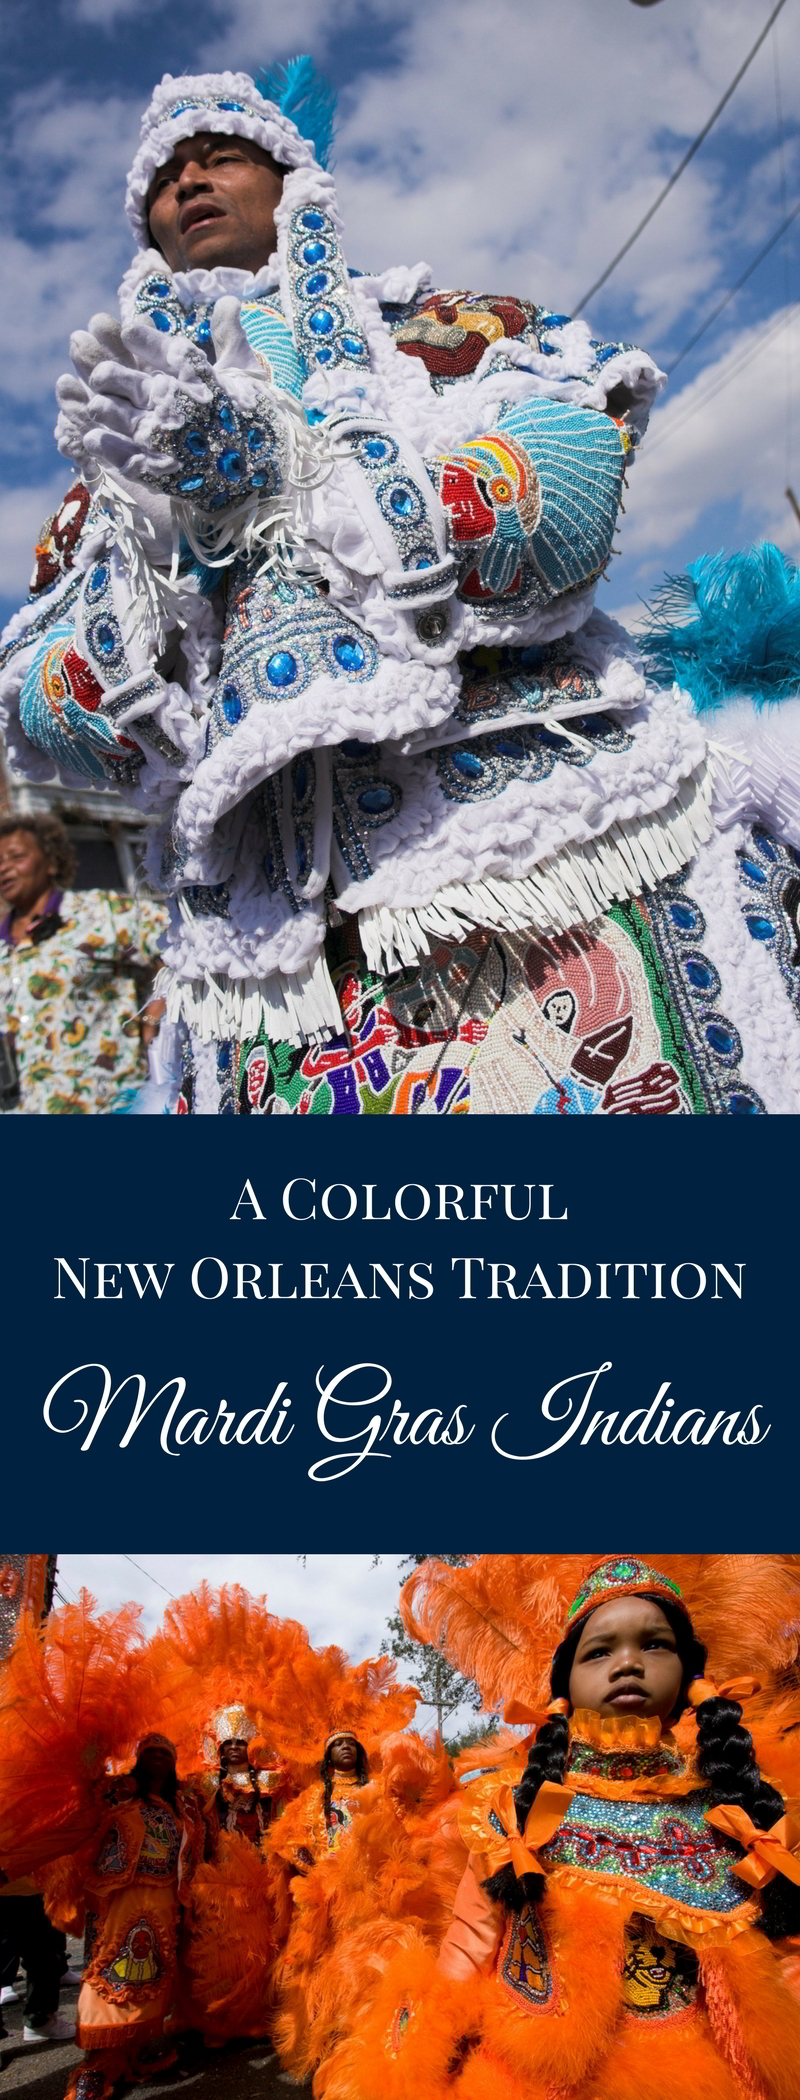 One of the most colorful (and secretive) of Carnival traditions has a second showing. The Mardi Gras Indians will strut their stuff on Super Sunday, traditionally the 3rd Sunday in March. (Photo courtesy Flickr user Derek Bridges)